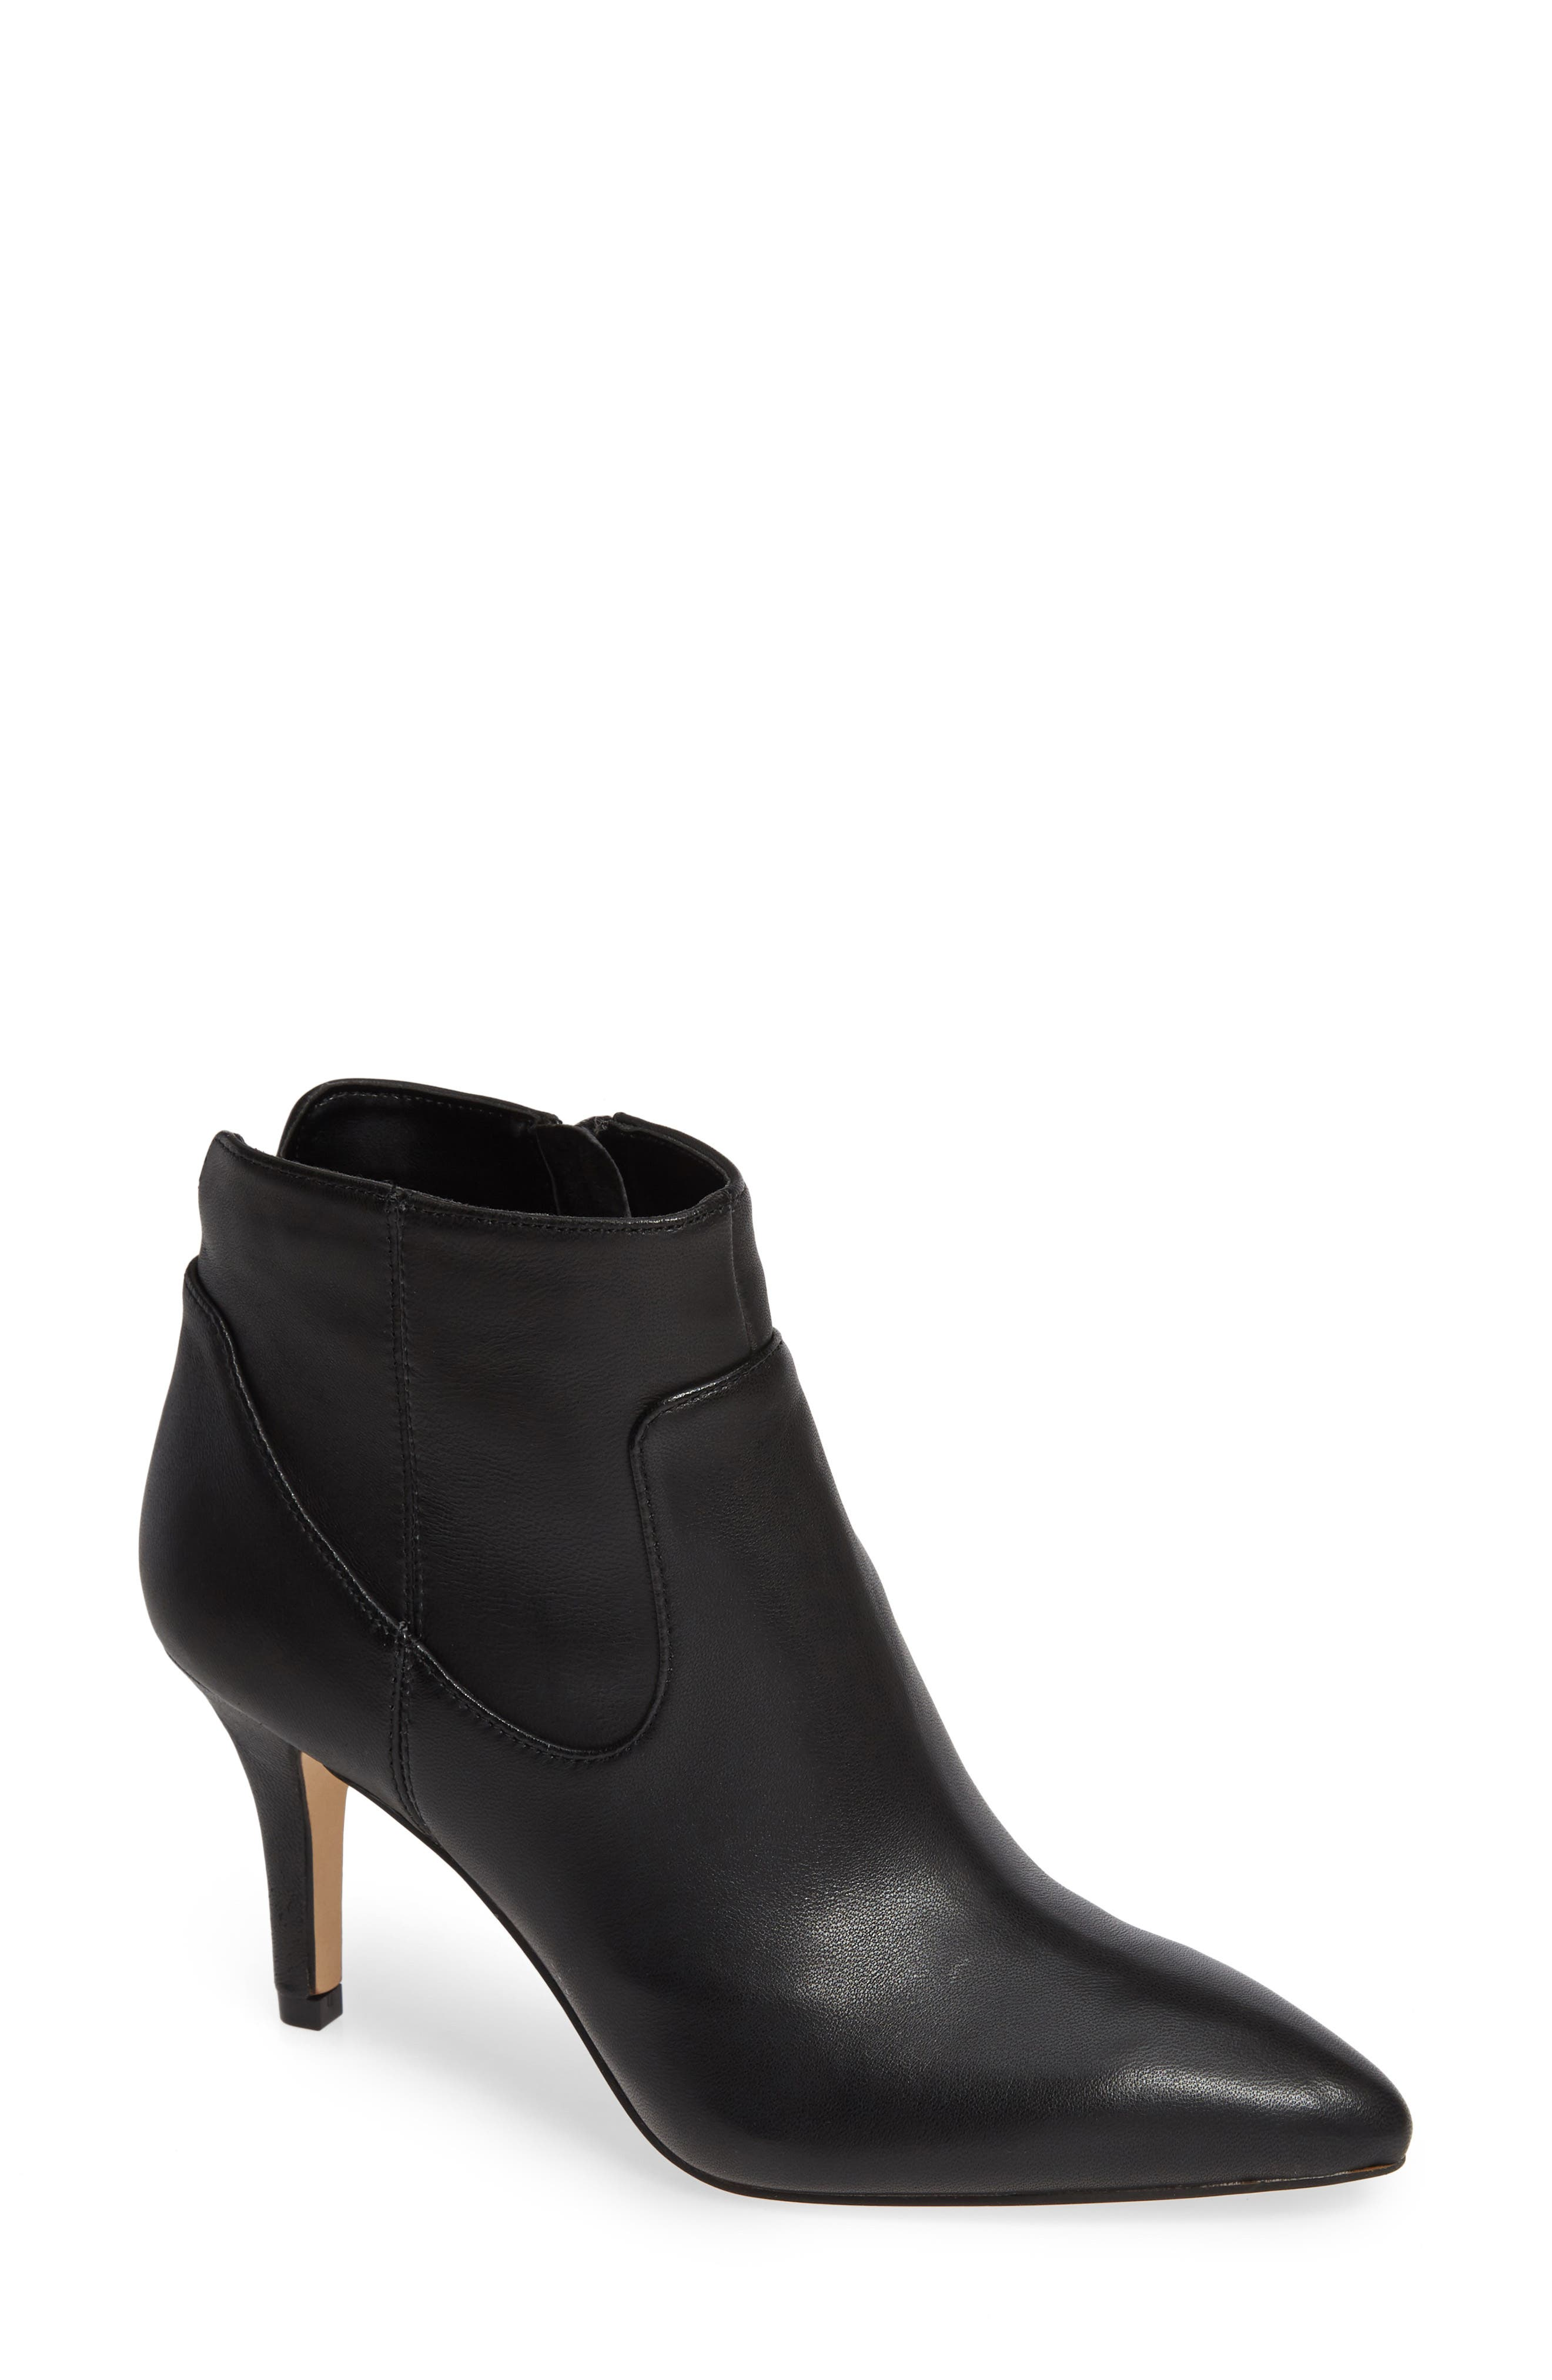 Raphaela Bootie,                             Main thumbnail 1, color,                             BLACK LEATHER